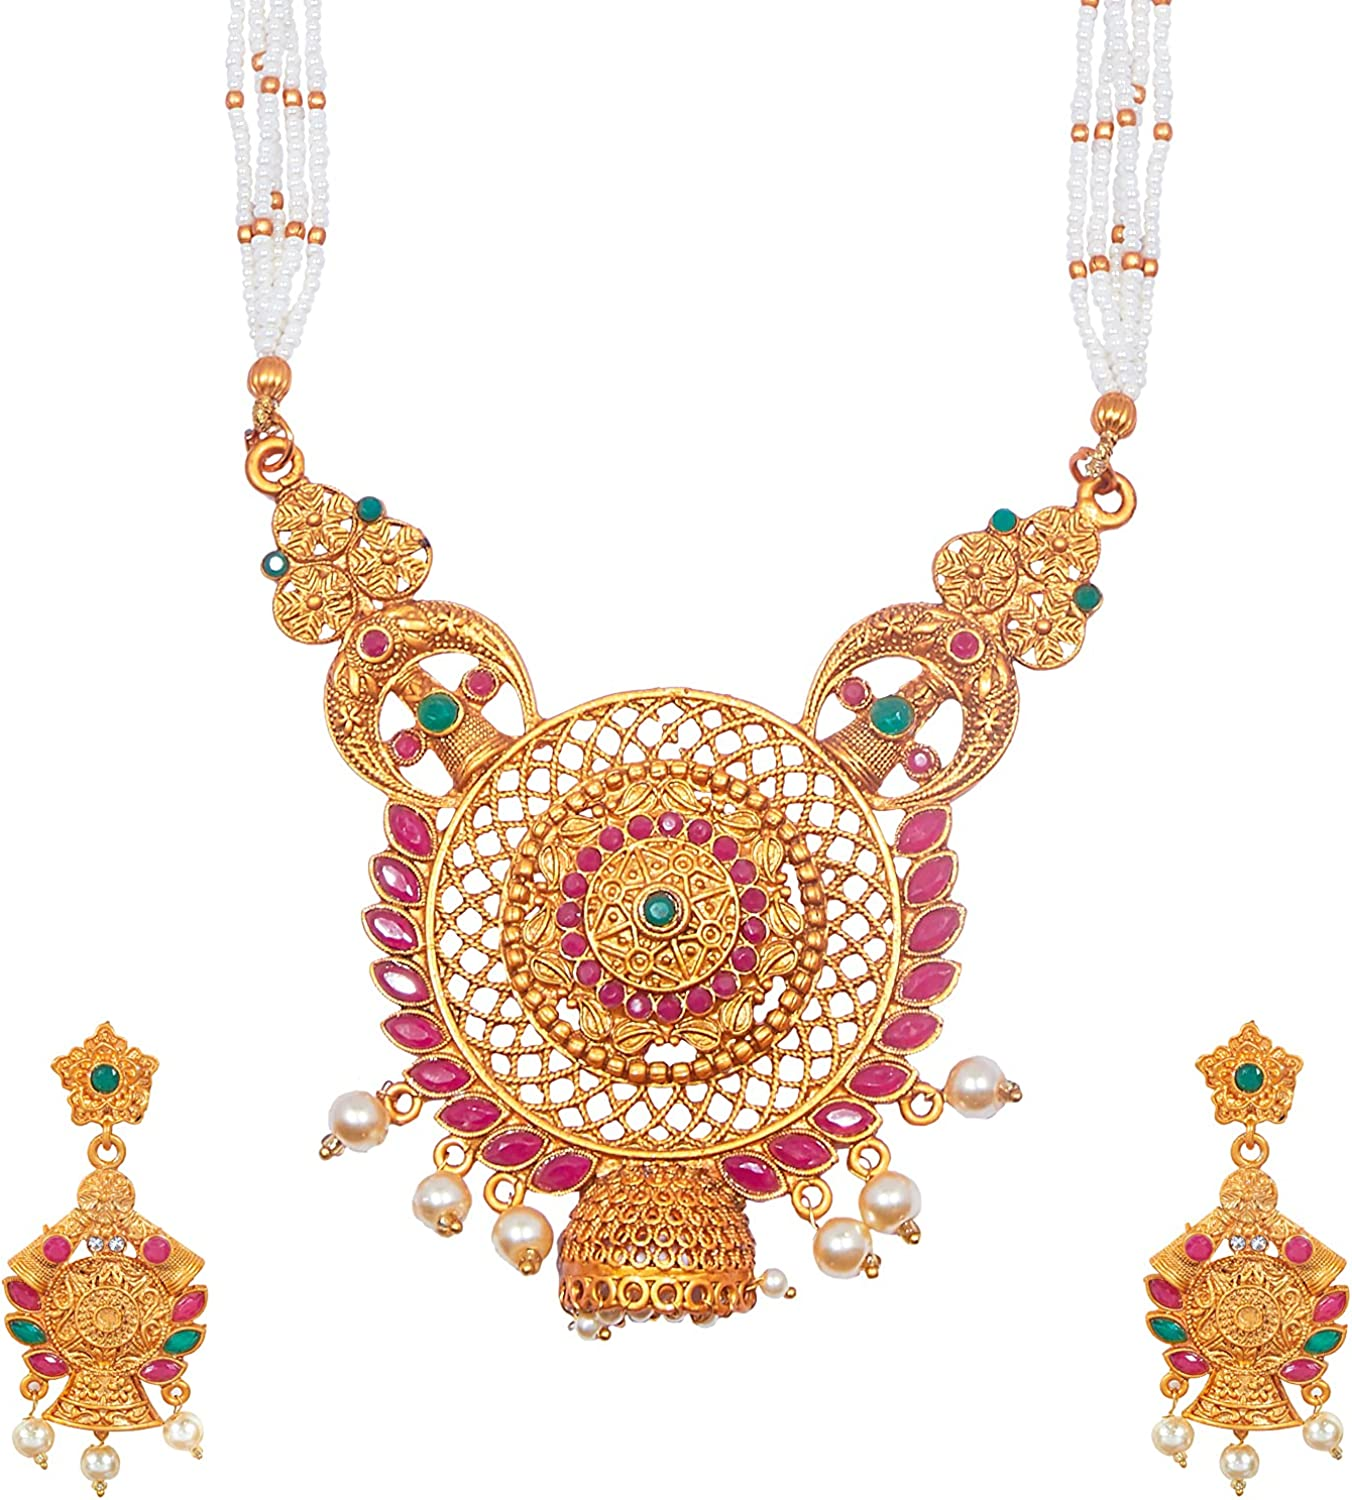 Bodha Tradtional Indian Handcrafted Antique Gold Plated Temple Jewellery Combo Bridal Dulhan Necklace Set With Matching Earring & Pearls For Women (SJ_2941)